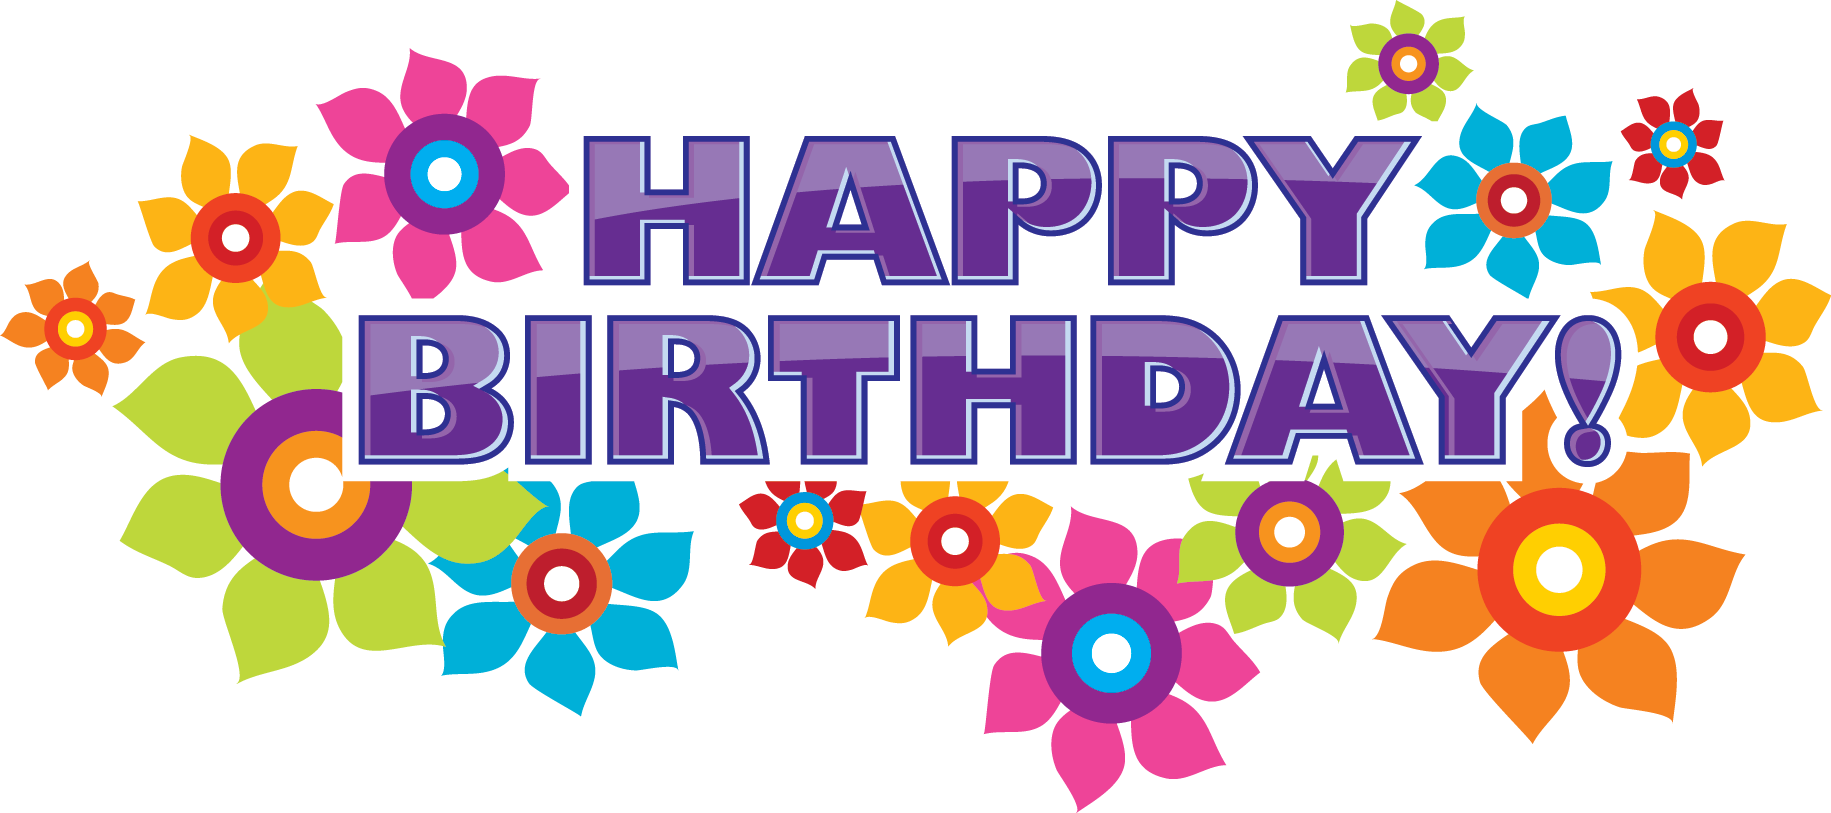 Words clipart happiness. Word of happy birthday